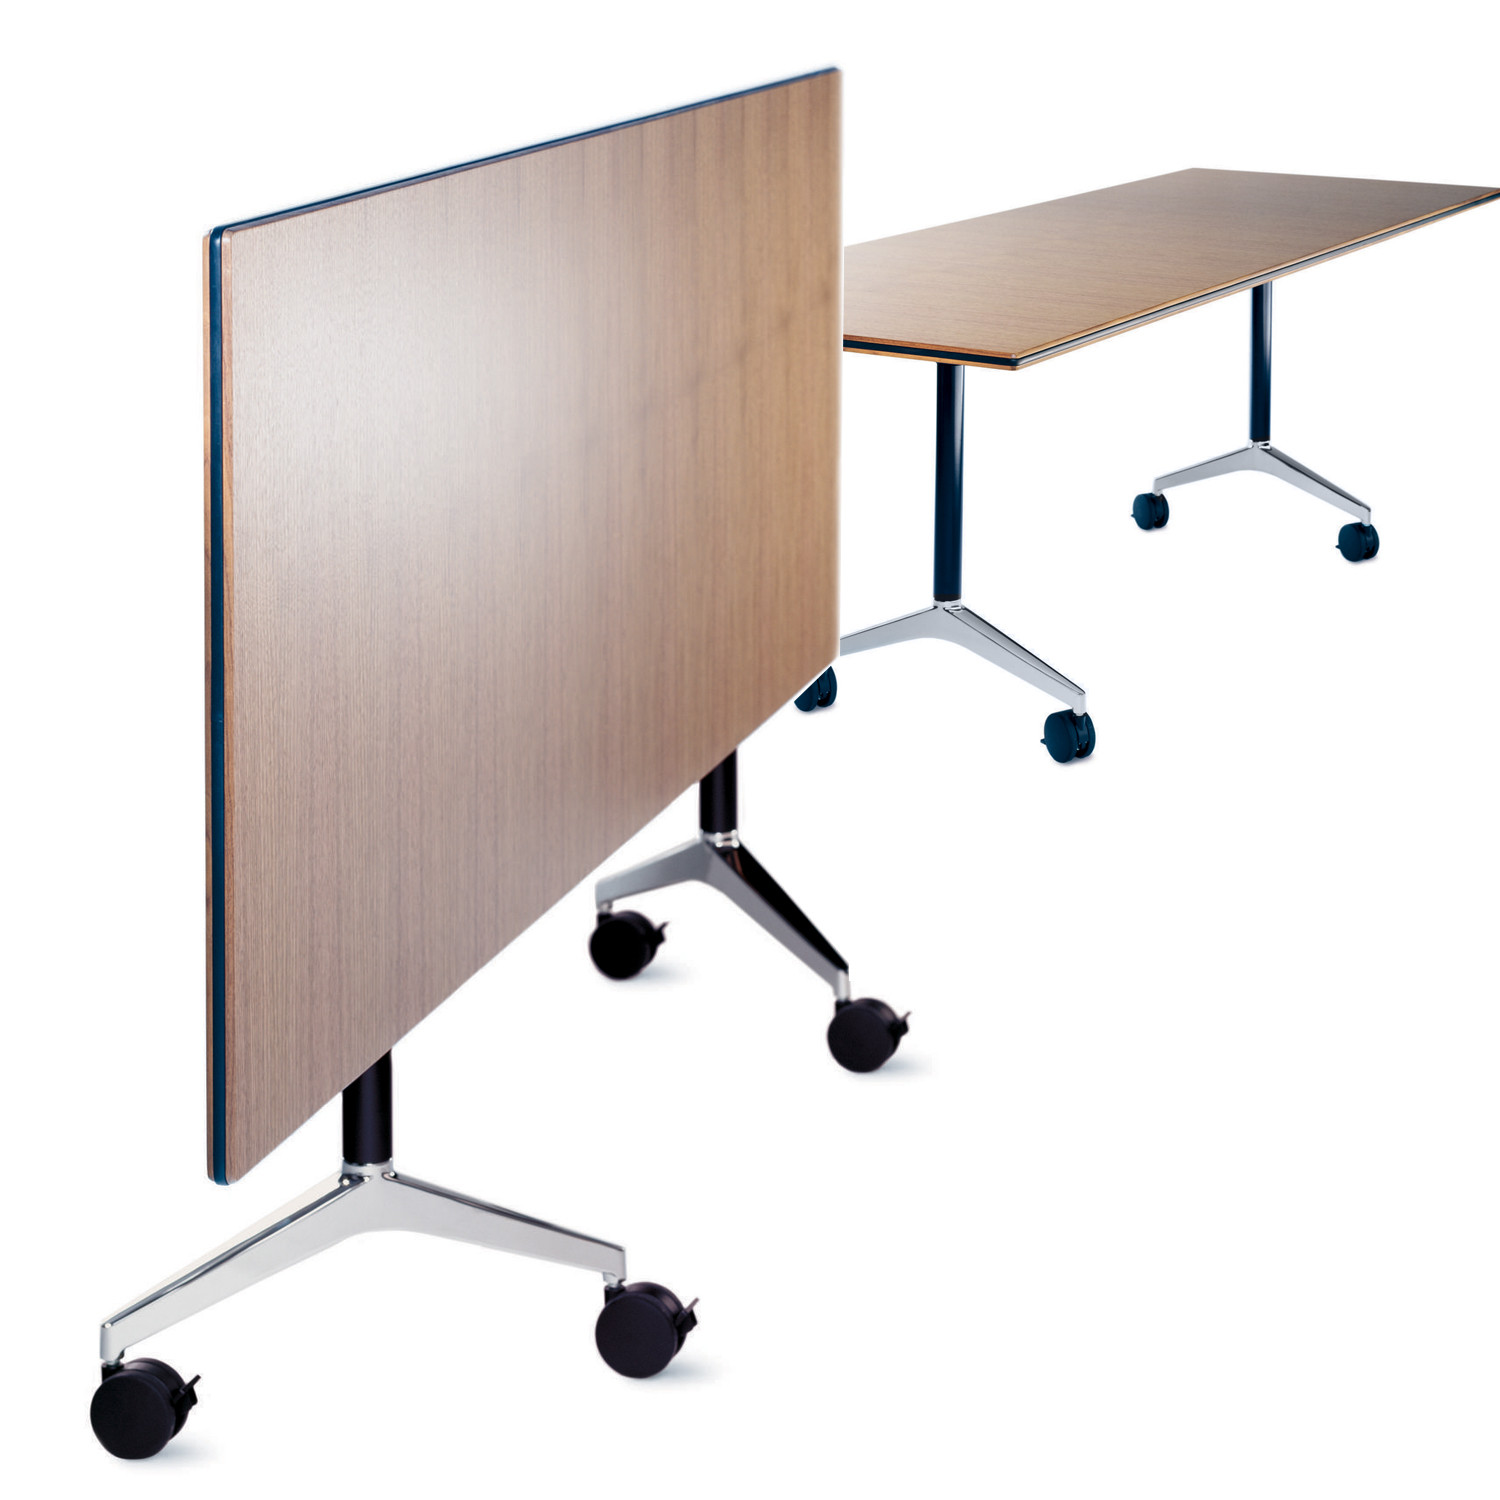 Timtable Folding Tables